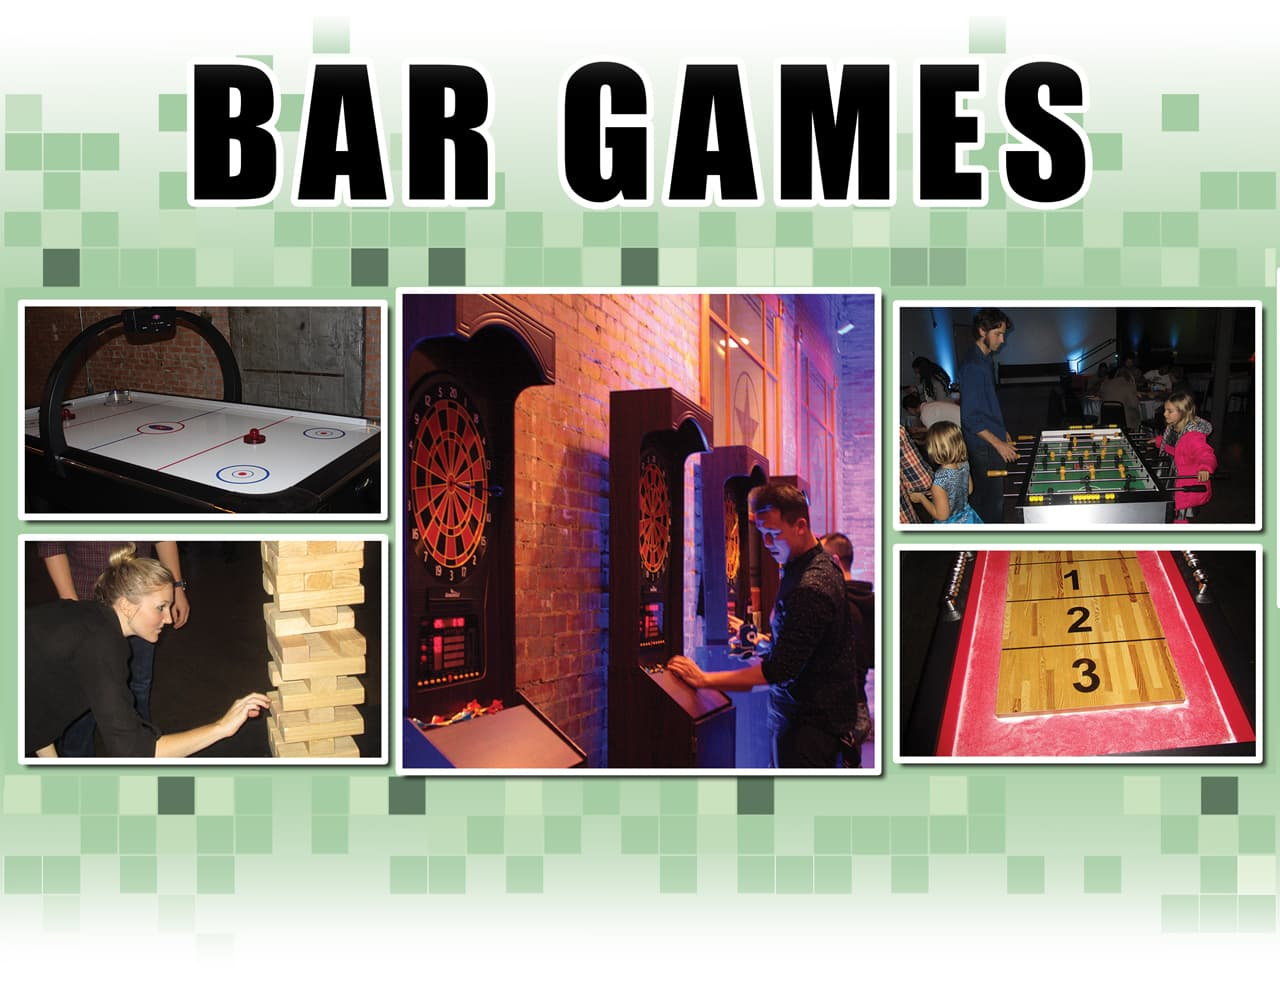 Bar Games WEB, collage of bar games